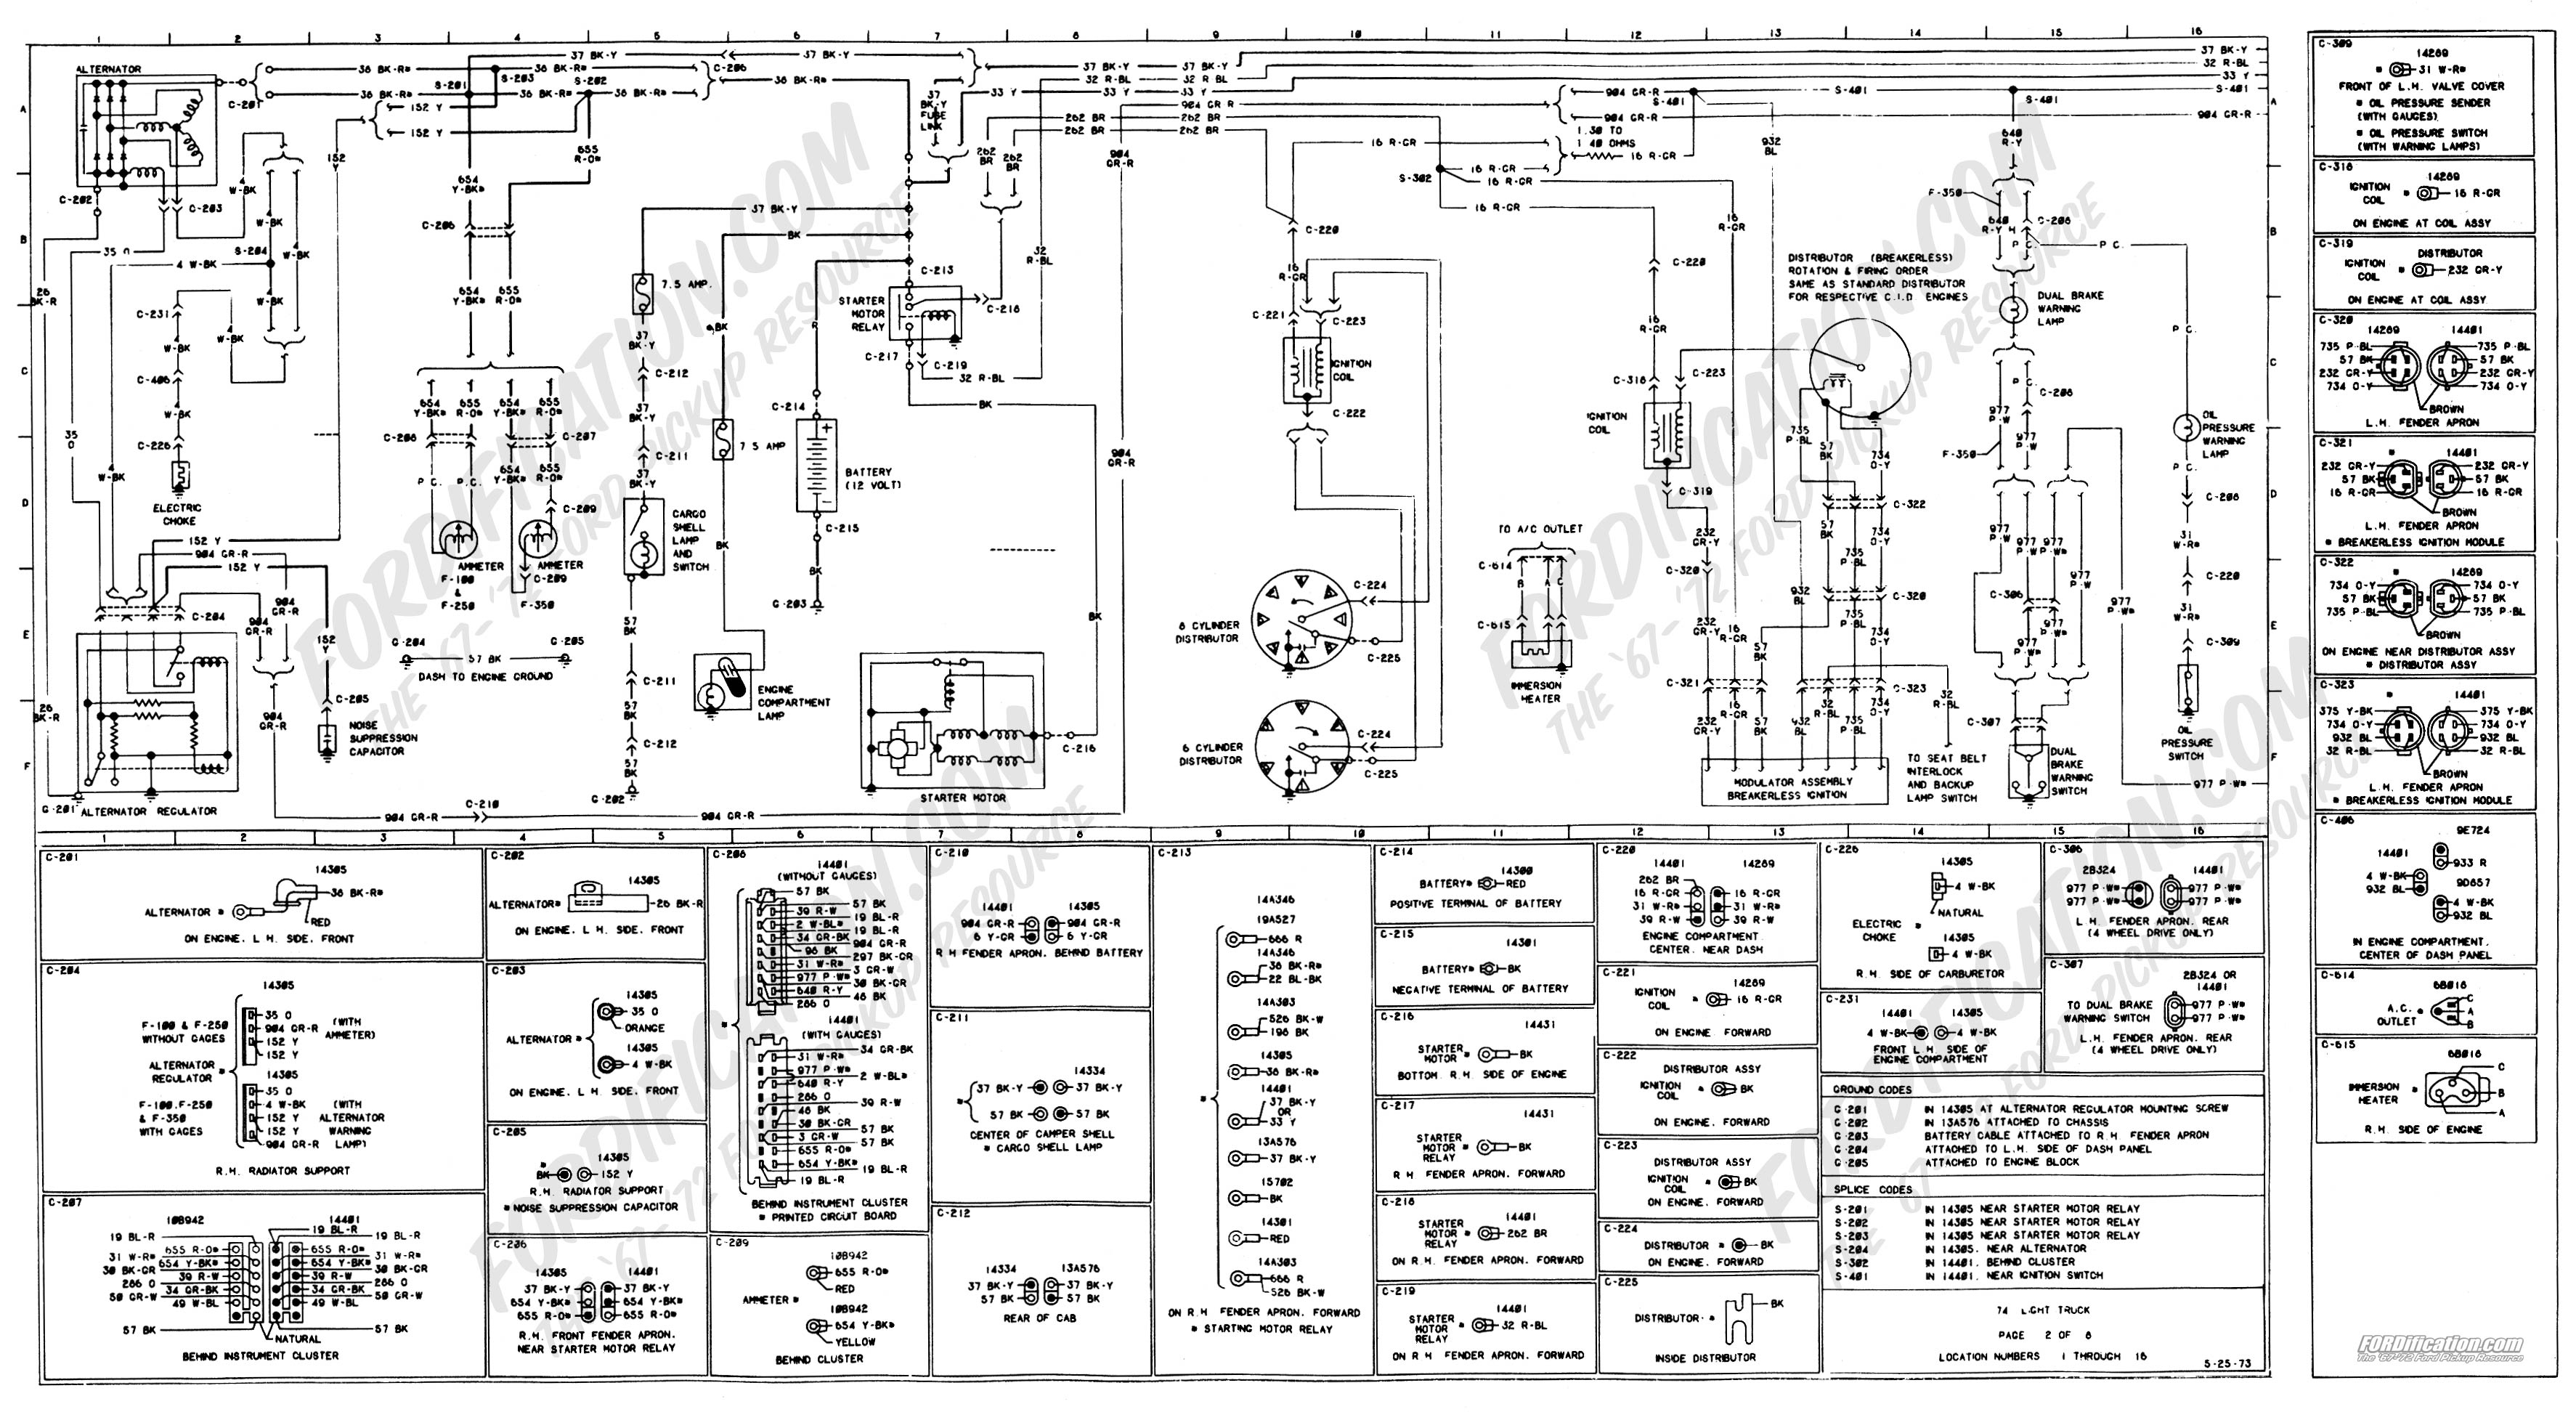 Wiring Diagram For Ford Pickup - Wiring Diagrams Hubs - Ford 8N Wiring Diagram